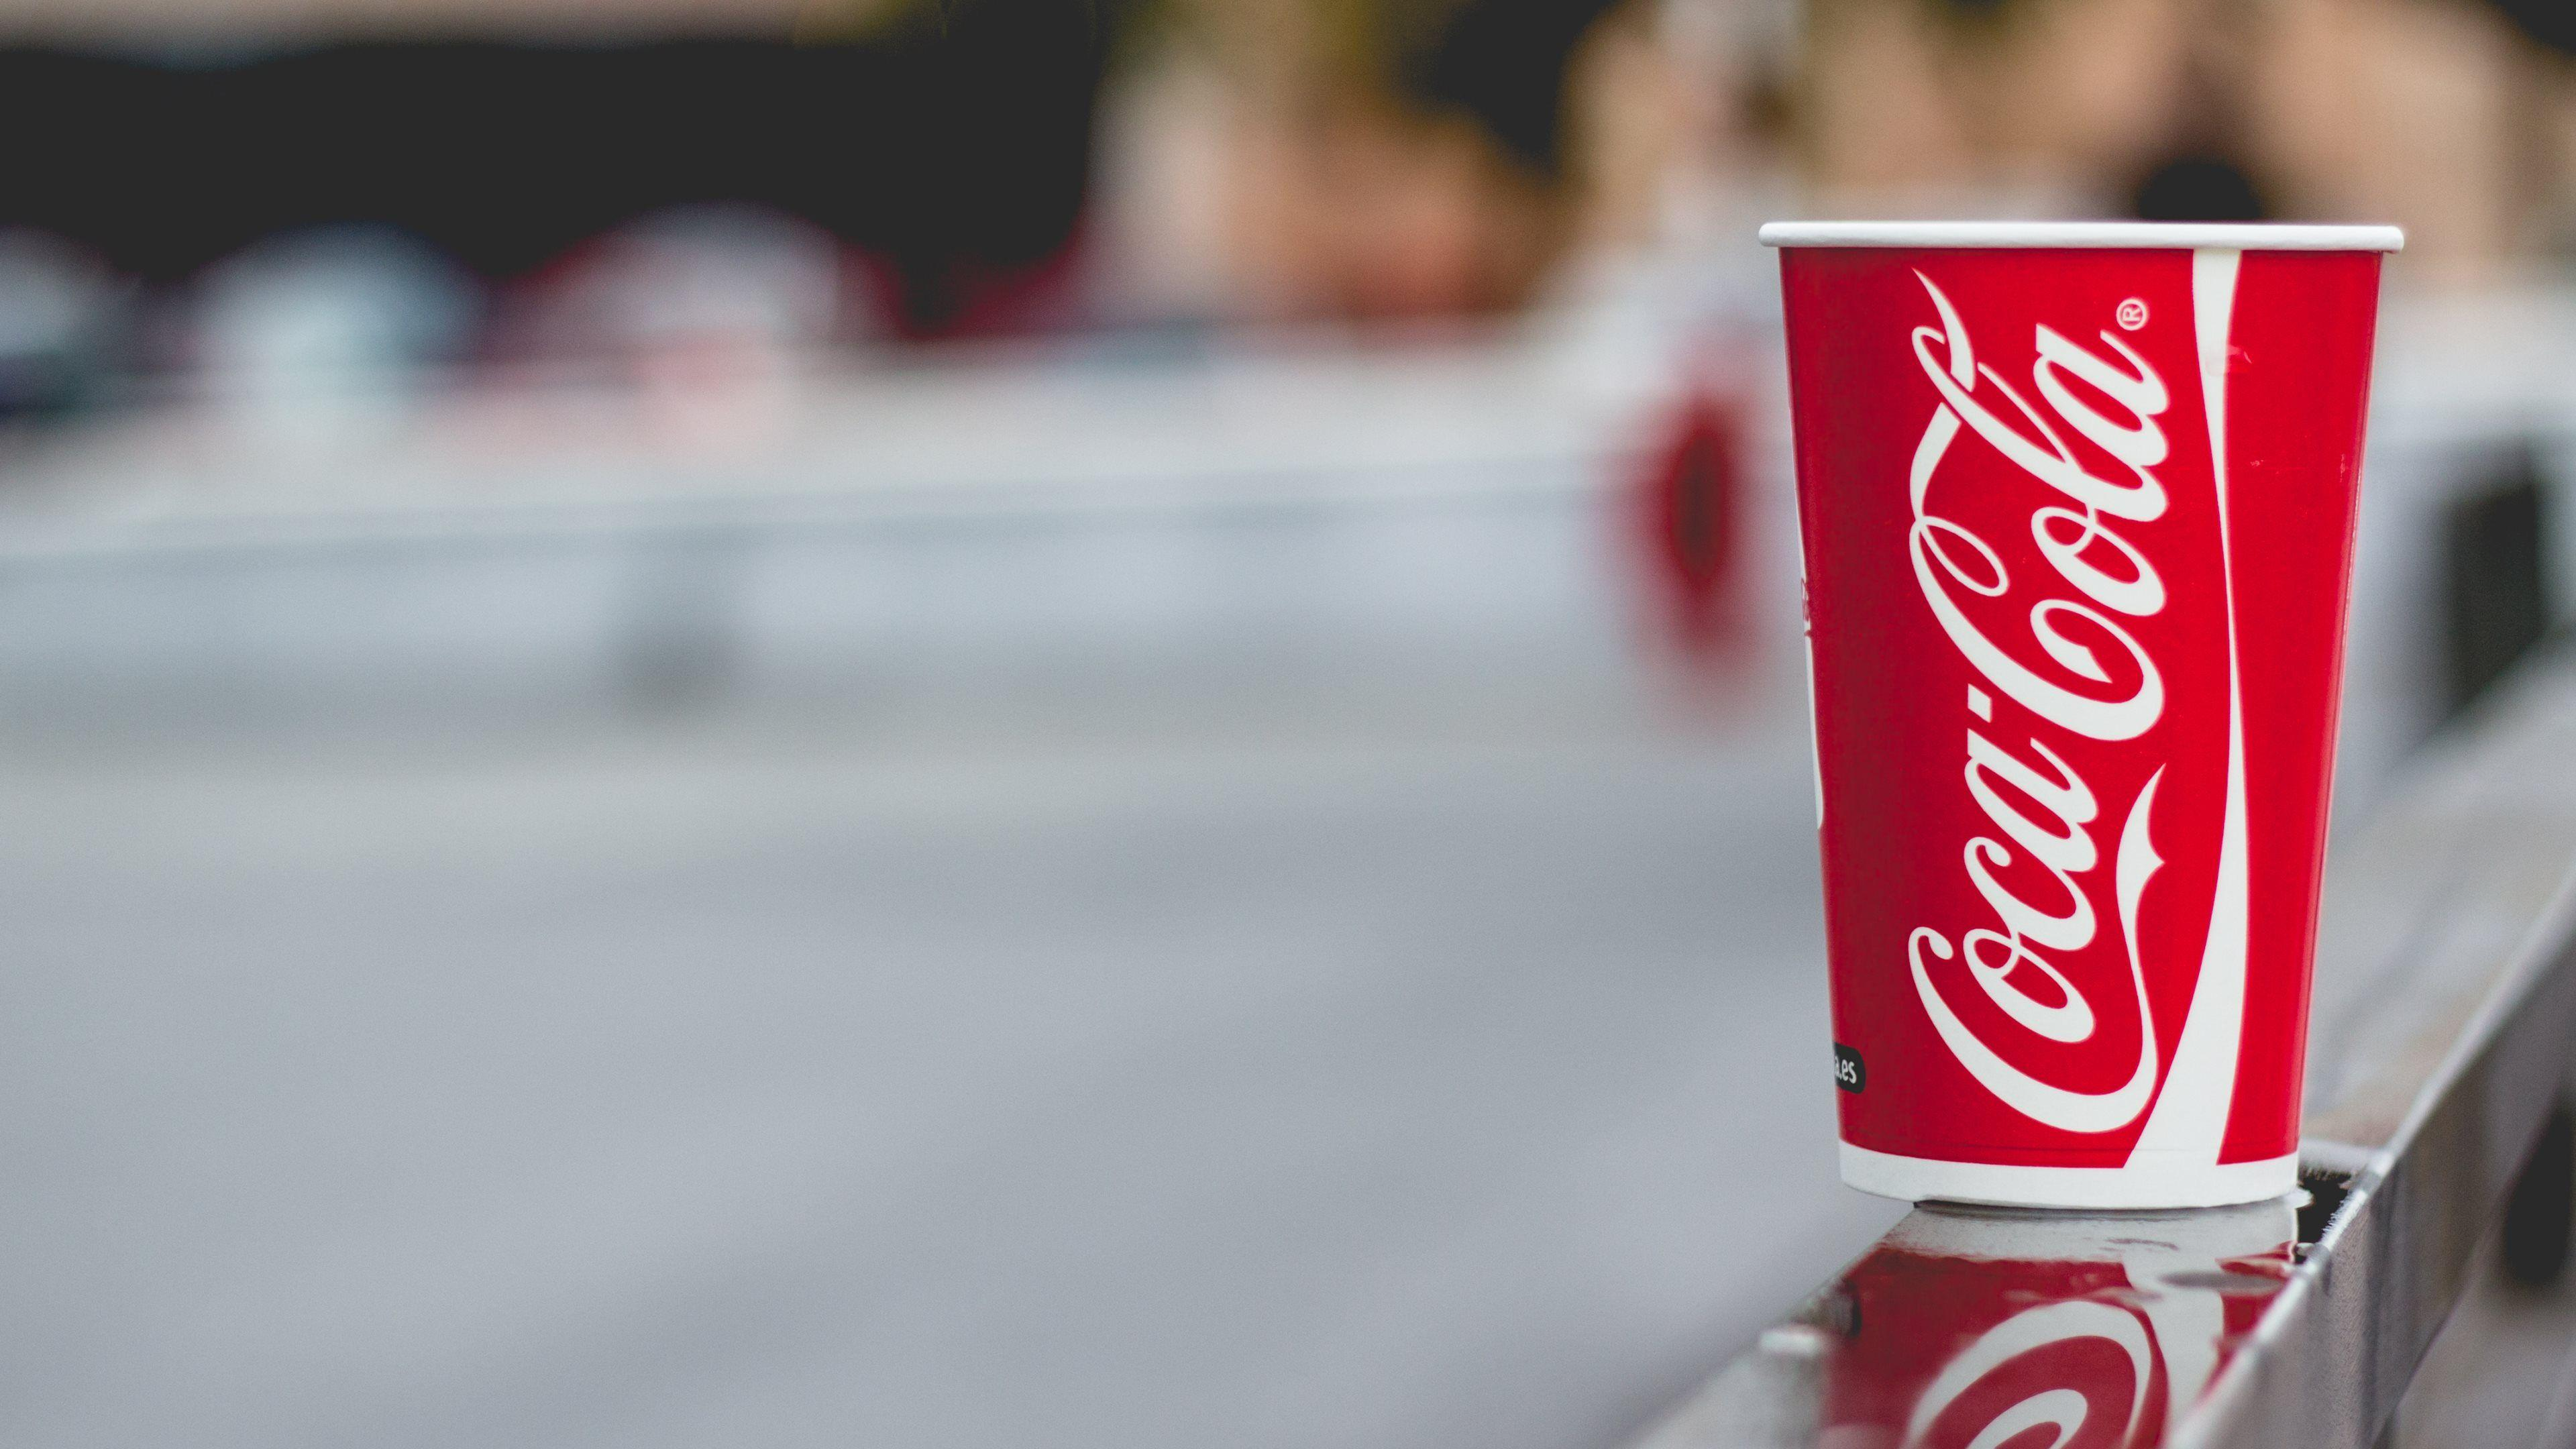 Coca Cola Backgrounds Free Download | HD Wallpapers, Backgrounds ...